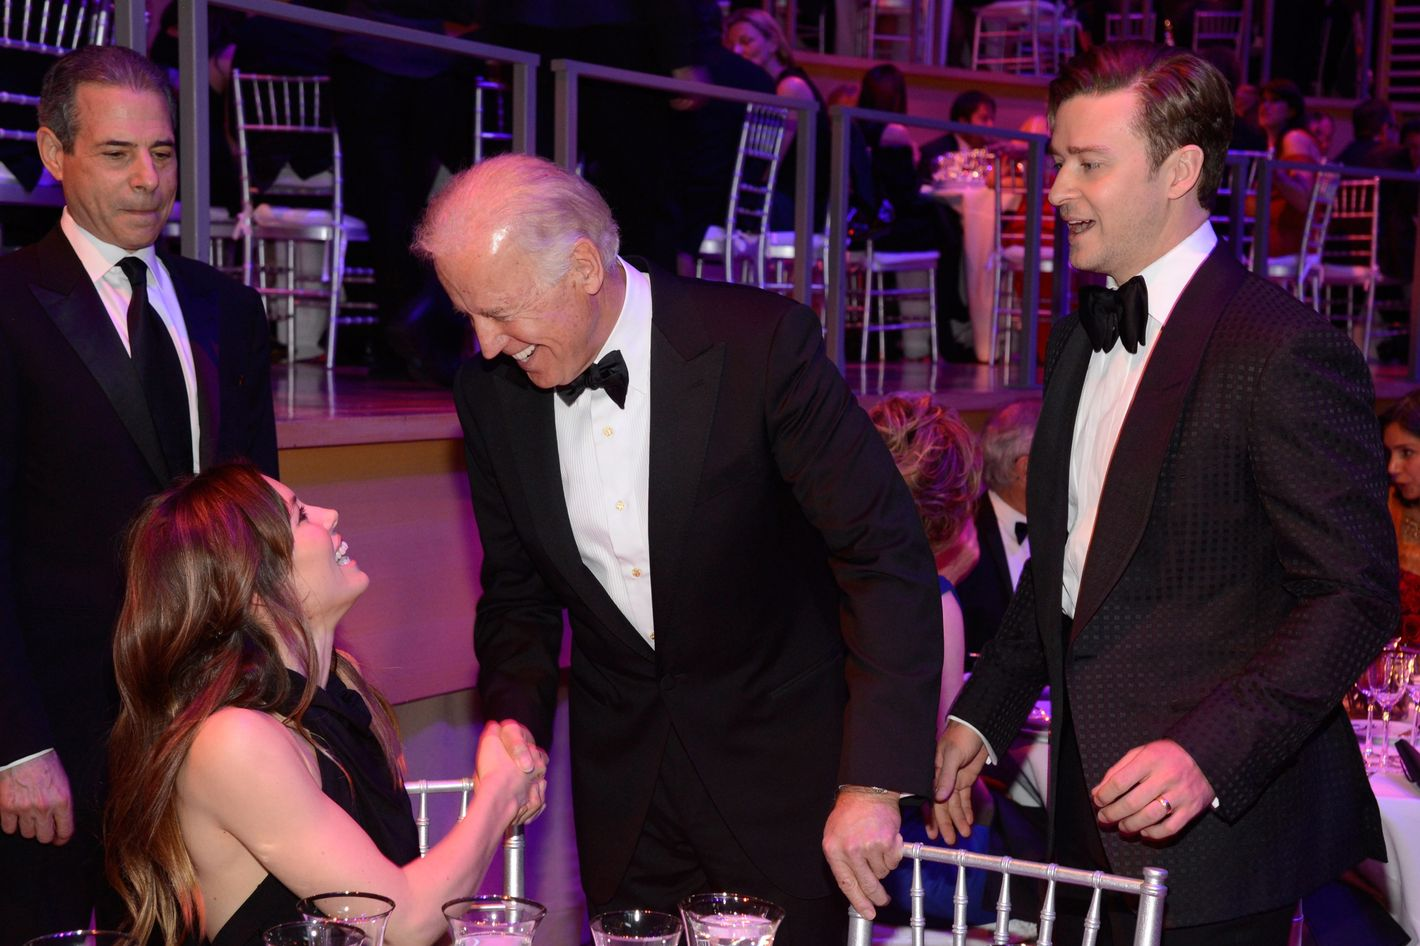 Jessica Biel, Vice President of The United States Joe Biden and Justin Timberlake attend TIME 100 Gala, TIME'S 100 Most Influential People In The World at Jazz at Lincoln Center on April 23, 2013 in New York City.